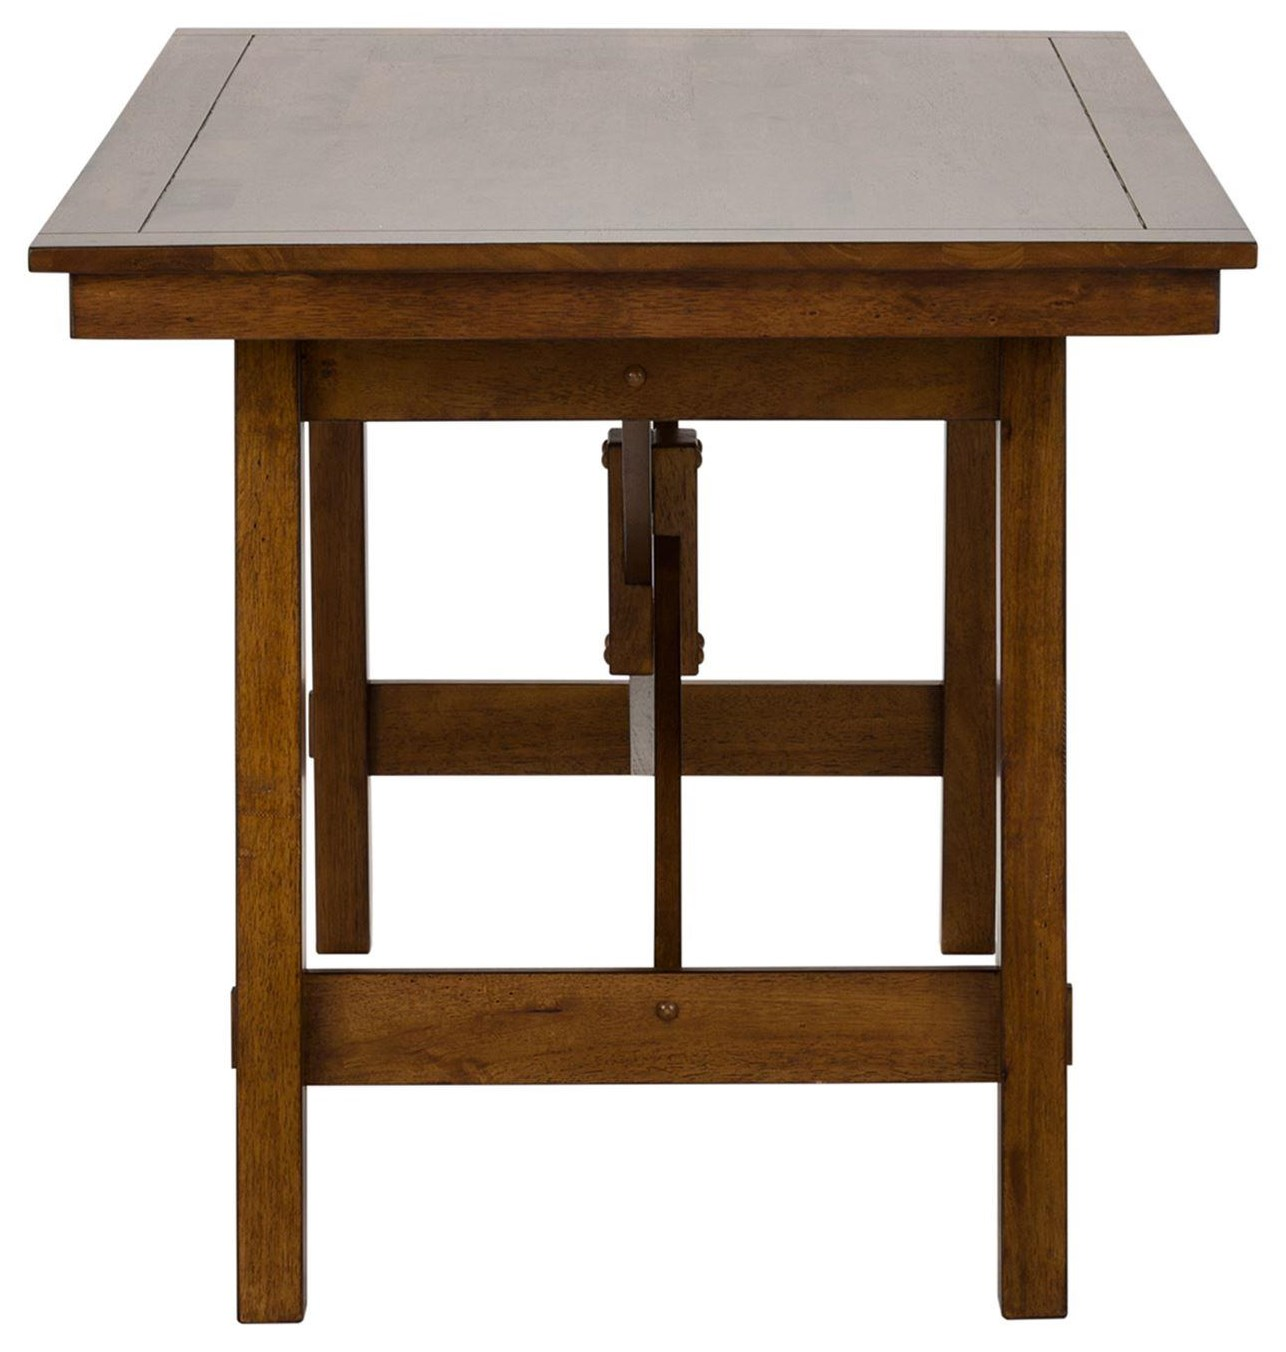 Creations II Rectangular Trestle Table by Freedom Furniture at Ruby Gordon Home